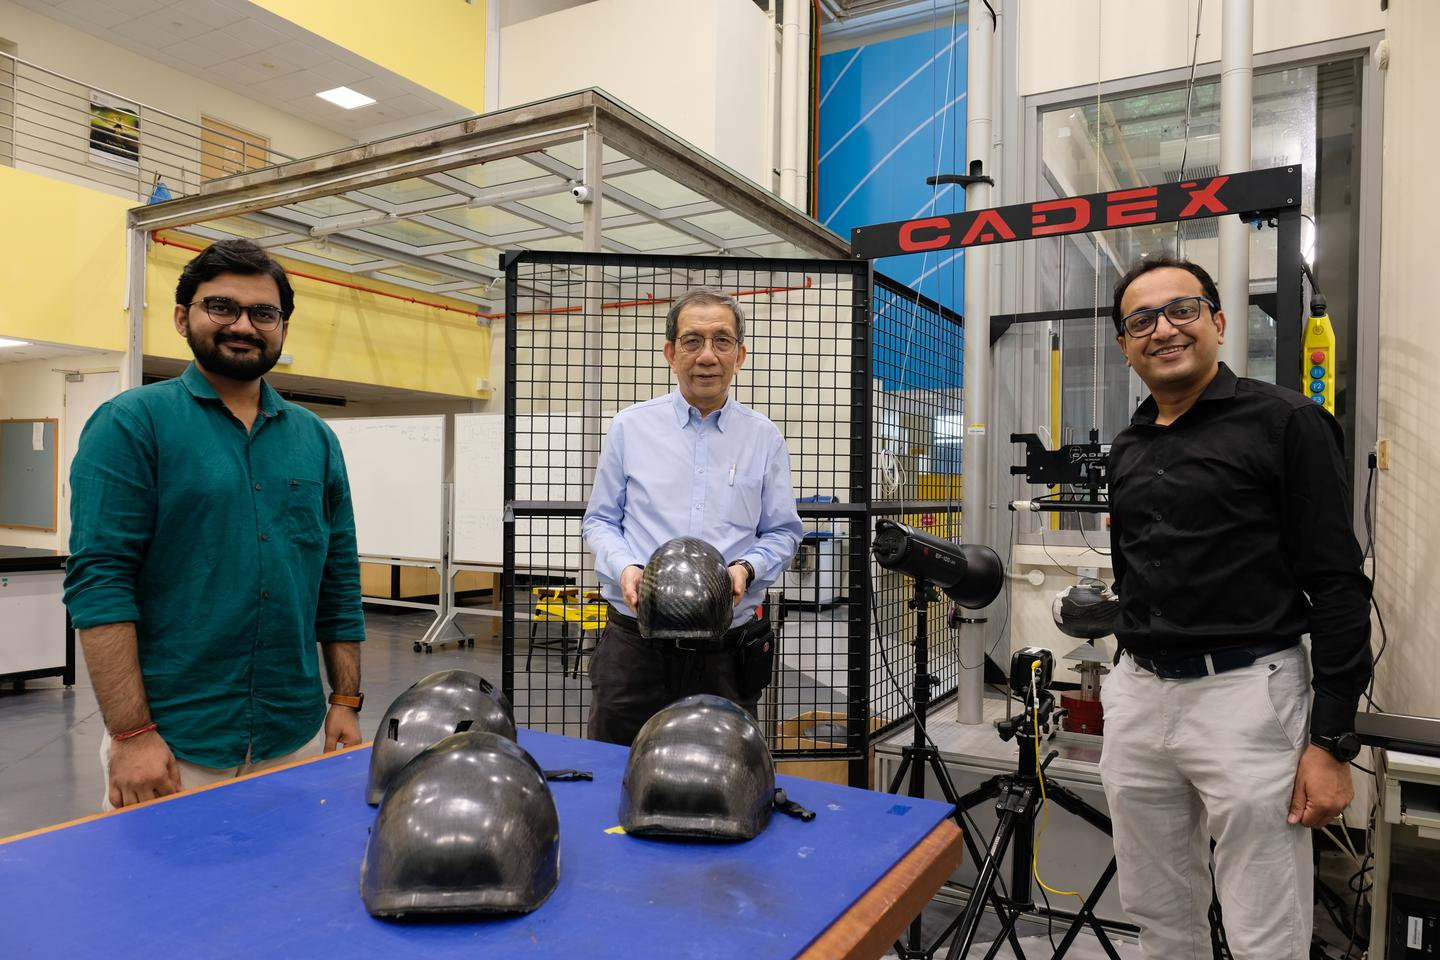 From left to right: Research associate Goram Gohel, Assoc. Prof. Leong Kah Fai and research fellow Dr. Bhudolia Somen Kumar, with some of their helmets